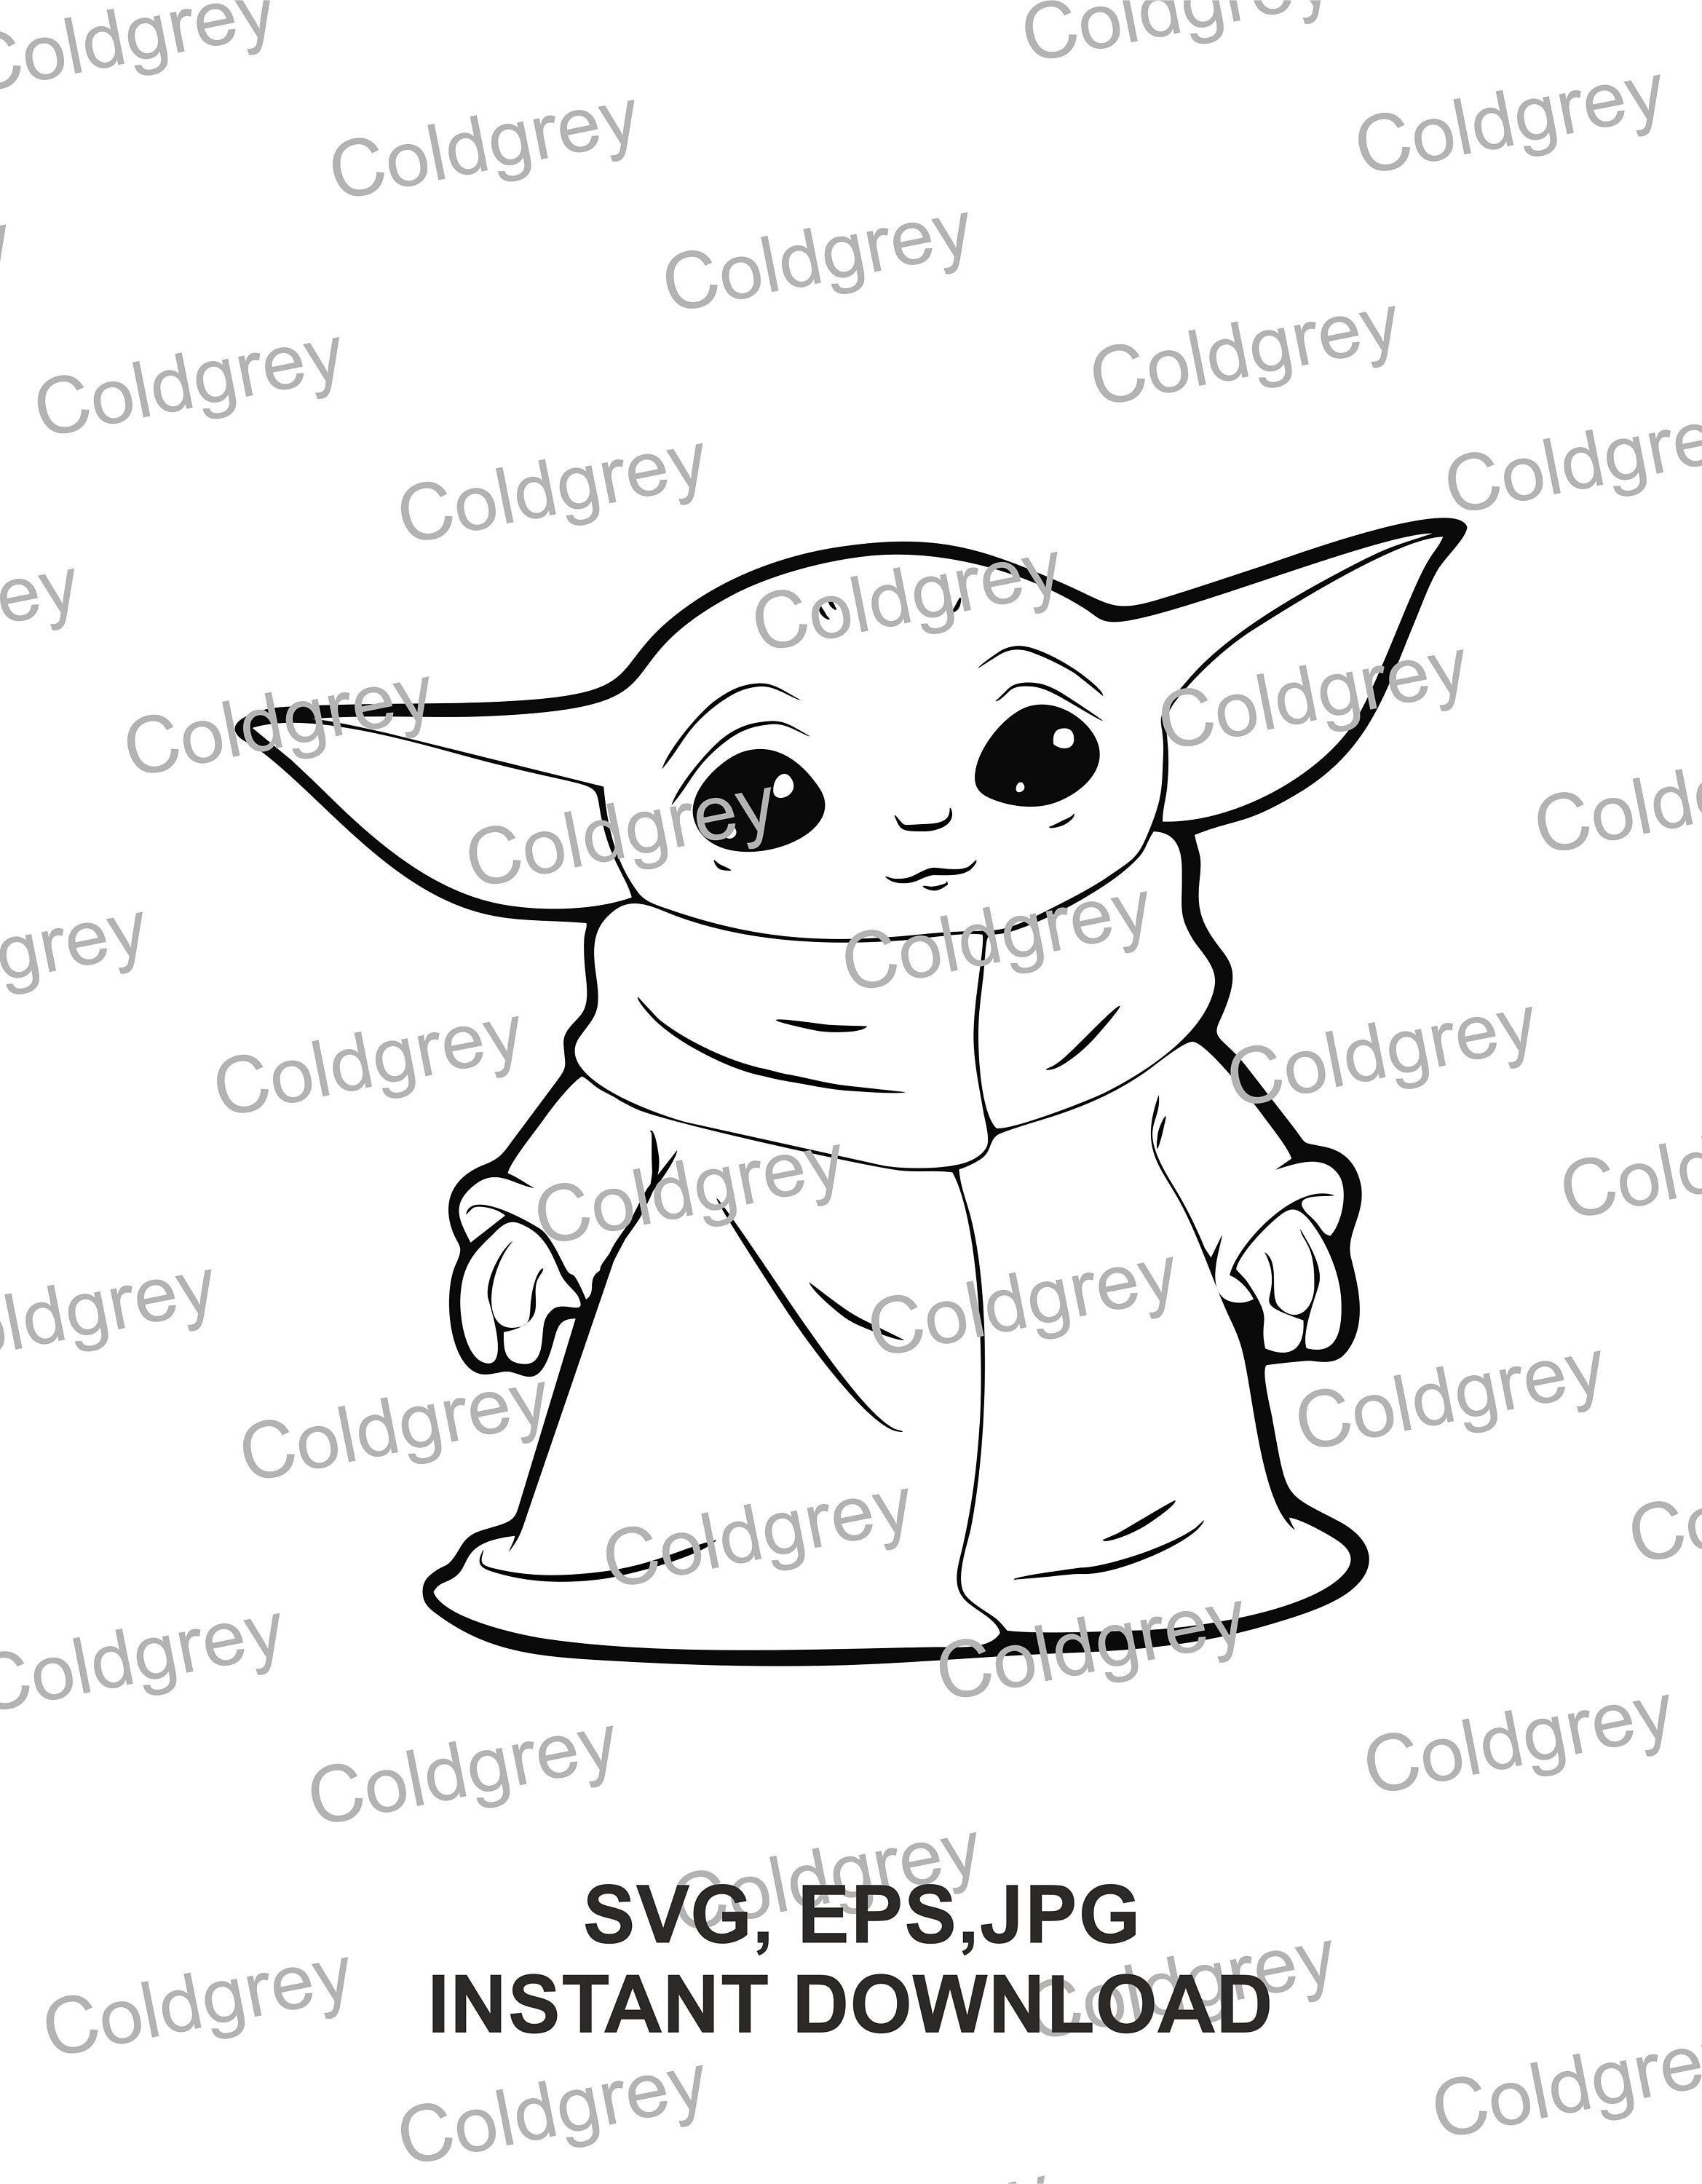 Baby Yoda Outline Svg Eps Jpg Instant Download For Cricut Etsy Yoda Drawing Yoda Art Yoda Images